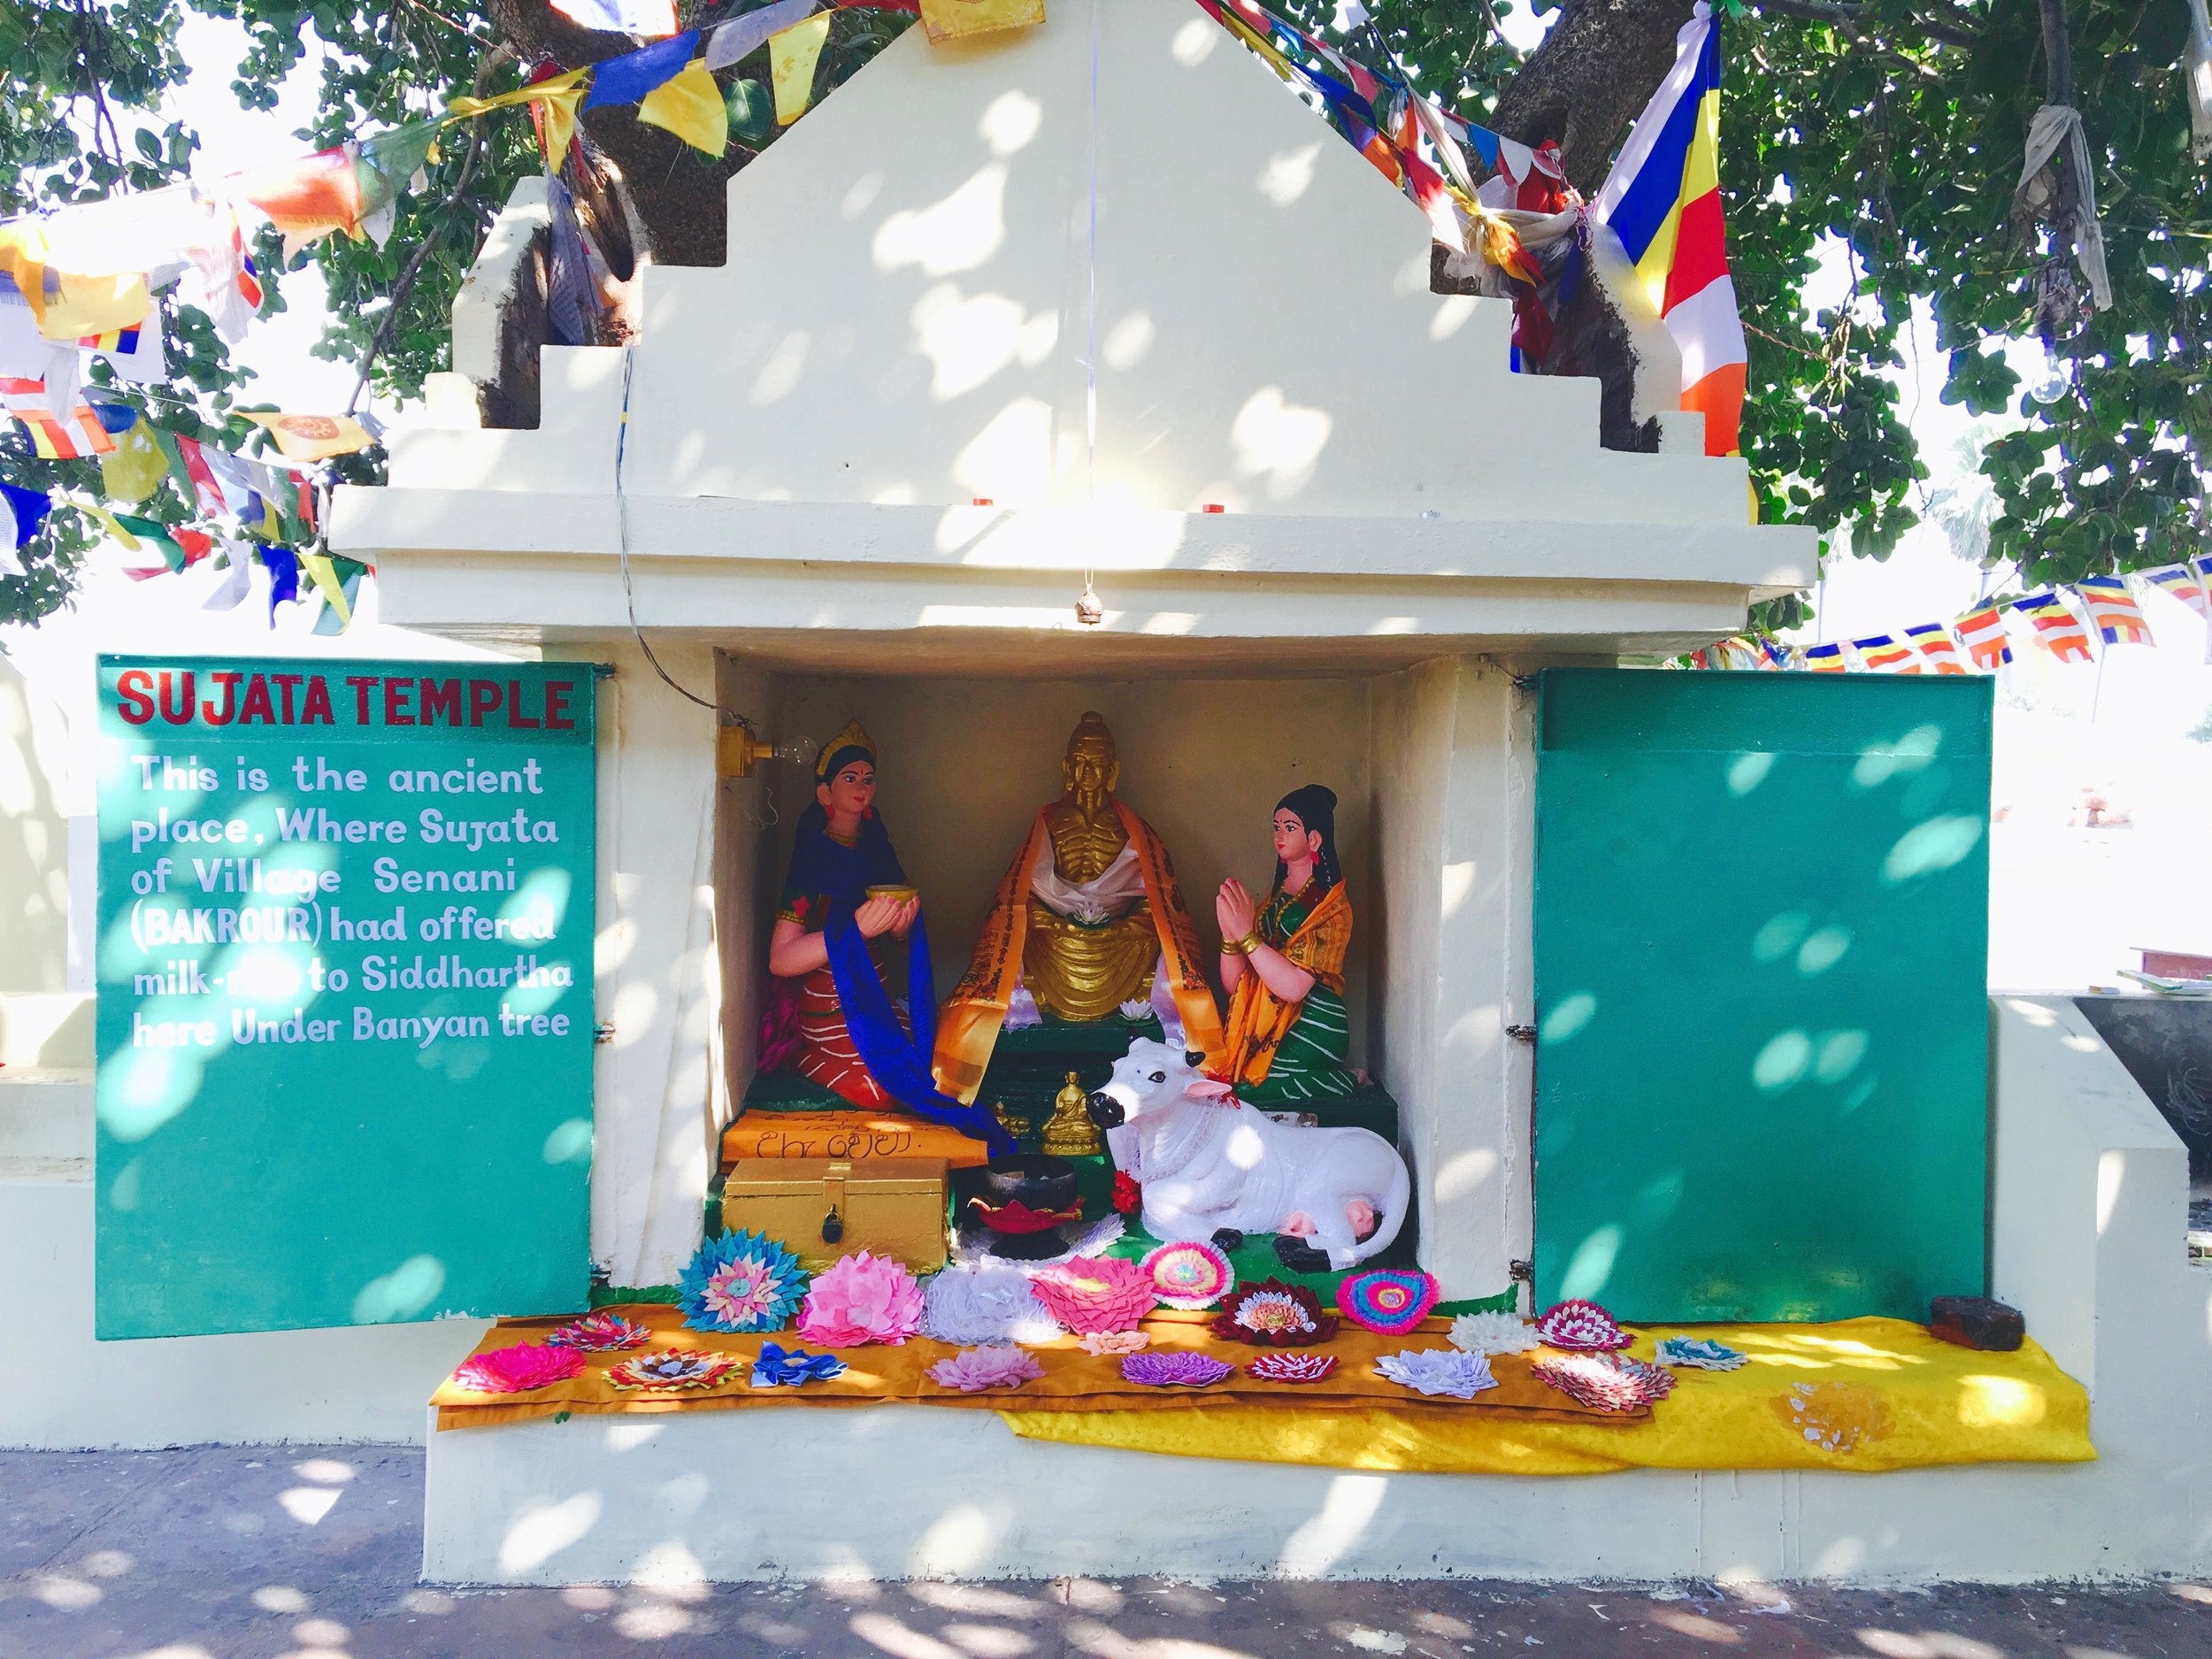 Arrived at Sujata Temple, where Buddha learned the Middle Way